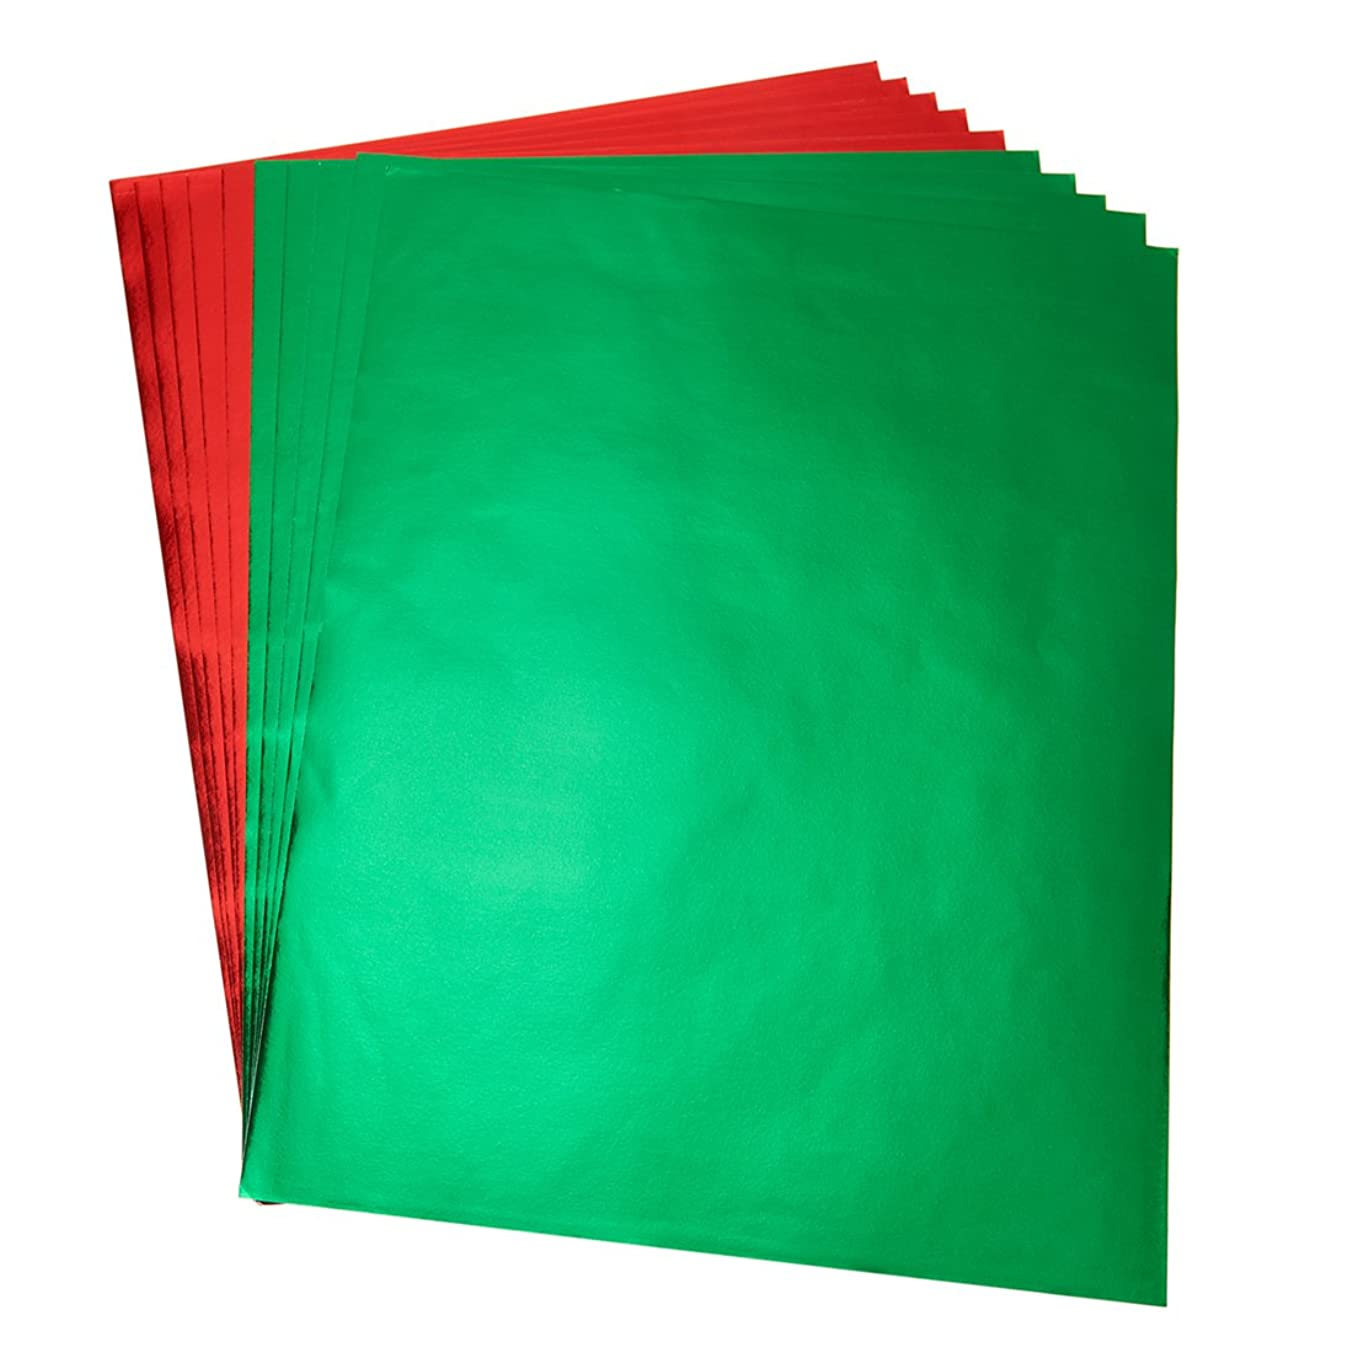 Hygloss Products Metallic Foil Paper Sheets ?– 10 x 13 Inches, Red and Green Sheets, 5 of Each Color